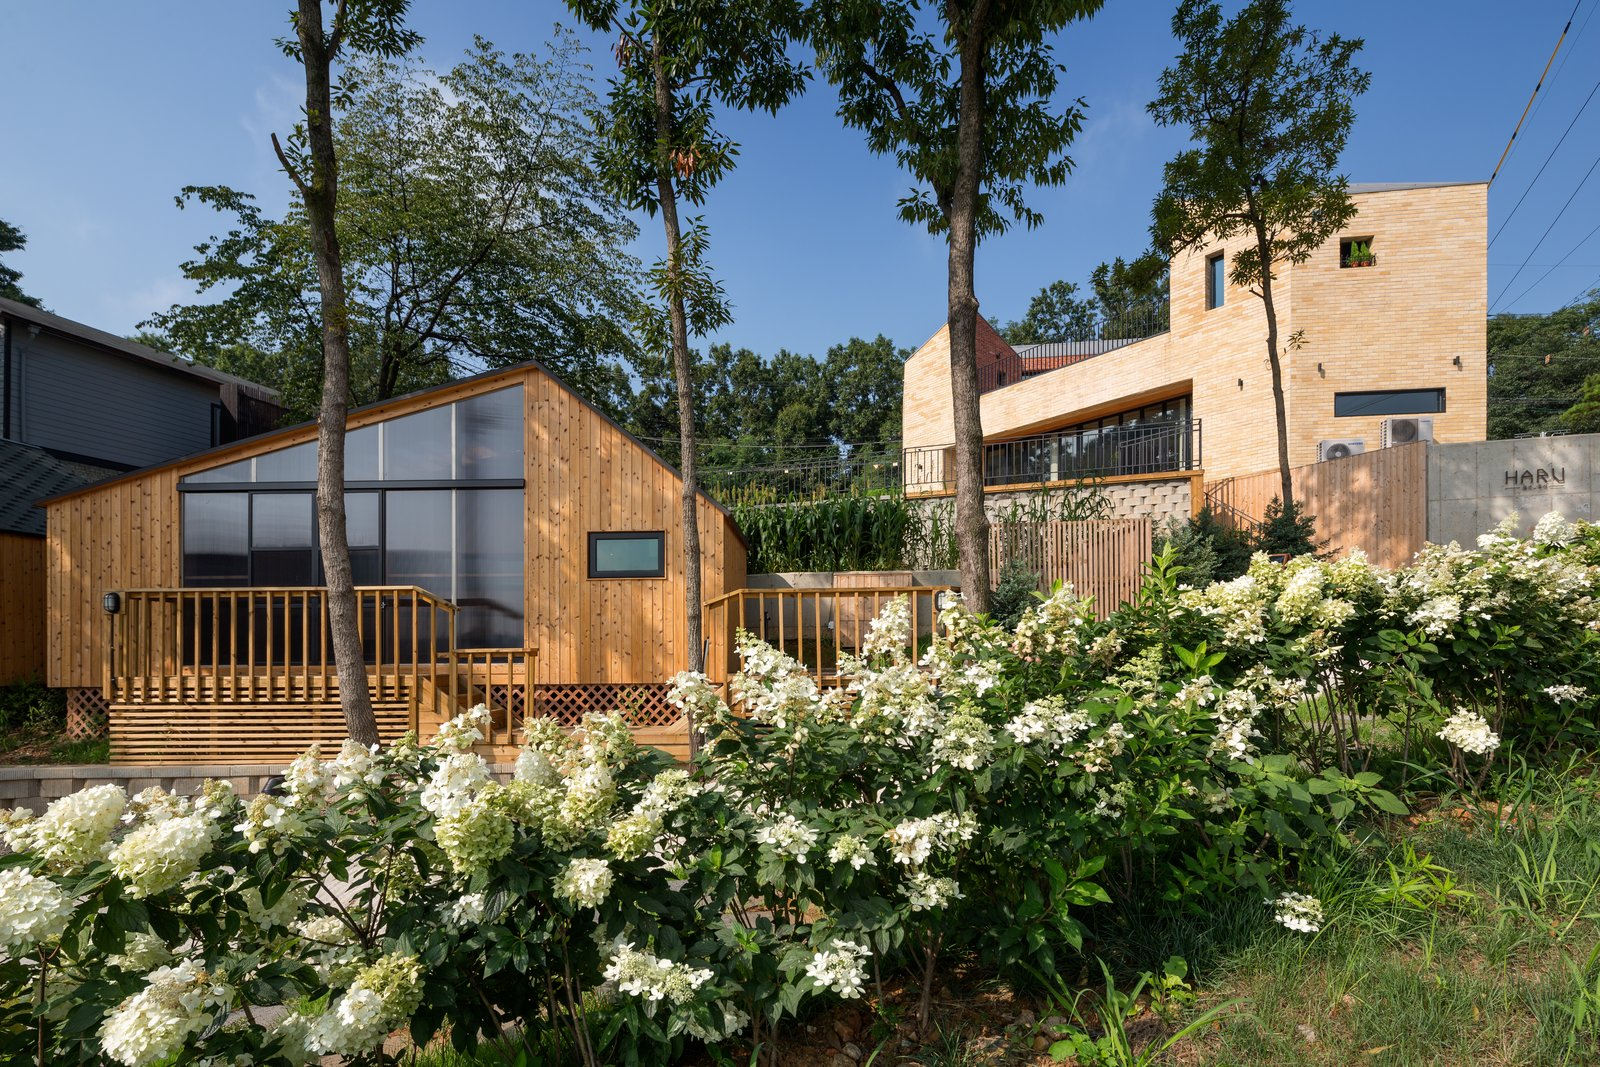 Outdoor, Front Yard, Trees, Shrubs, Flowers, Wood Patio, Porch, Deck, Wood Fences, Wall, and Grass A local nature enthusiast in the Gyeonggi province sets up a cafe and cabin retreat to combat a diminishing forest.   Designed to be in harmony with the surrounding forest, Haru is a cafe and camping complex by South Korean firm B.U.S Architecture. The architects collaborated with the owner, who was born and raised in the area and already had years of experience running a campsite, to define what an outdoor lifestyle meant to each of them—and determine how to best convey it through architecture.   On walks through the densely wooded landscape, they selected which trees would be preserved in order to create a sense of scale; in this sense, the pattern of the forest impacted the project from beginning to end.  Photo 2 of 11 in A Camping Village in South Korea Draws Inspiration From an Iconic Fairy Tale